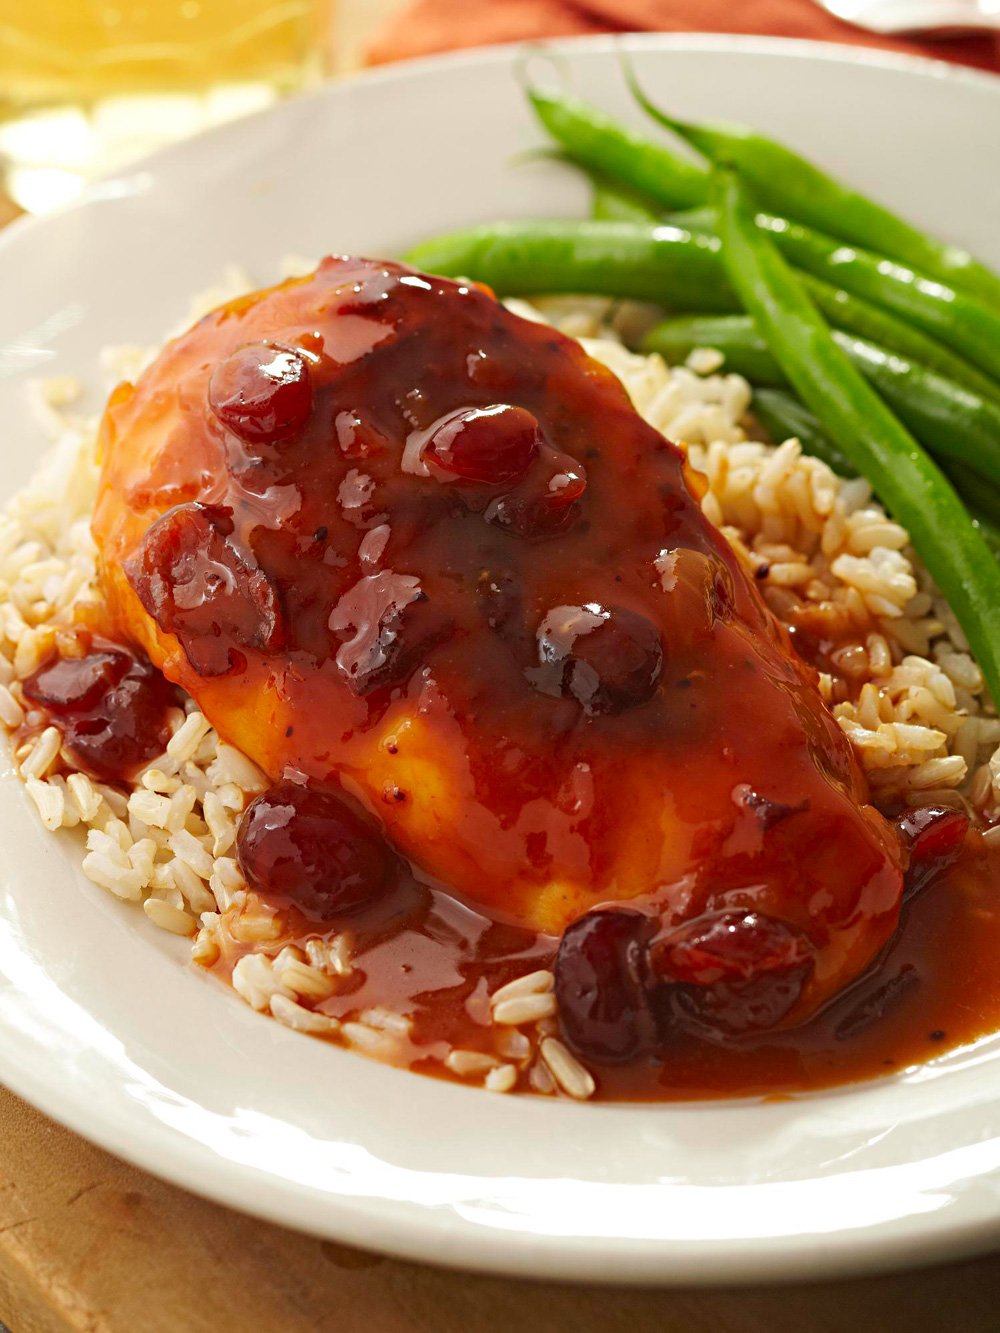 Chef Joe's Cranberry Orange Chicken